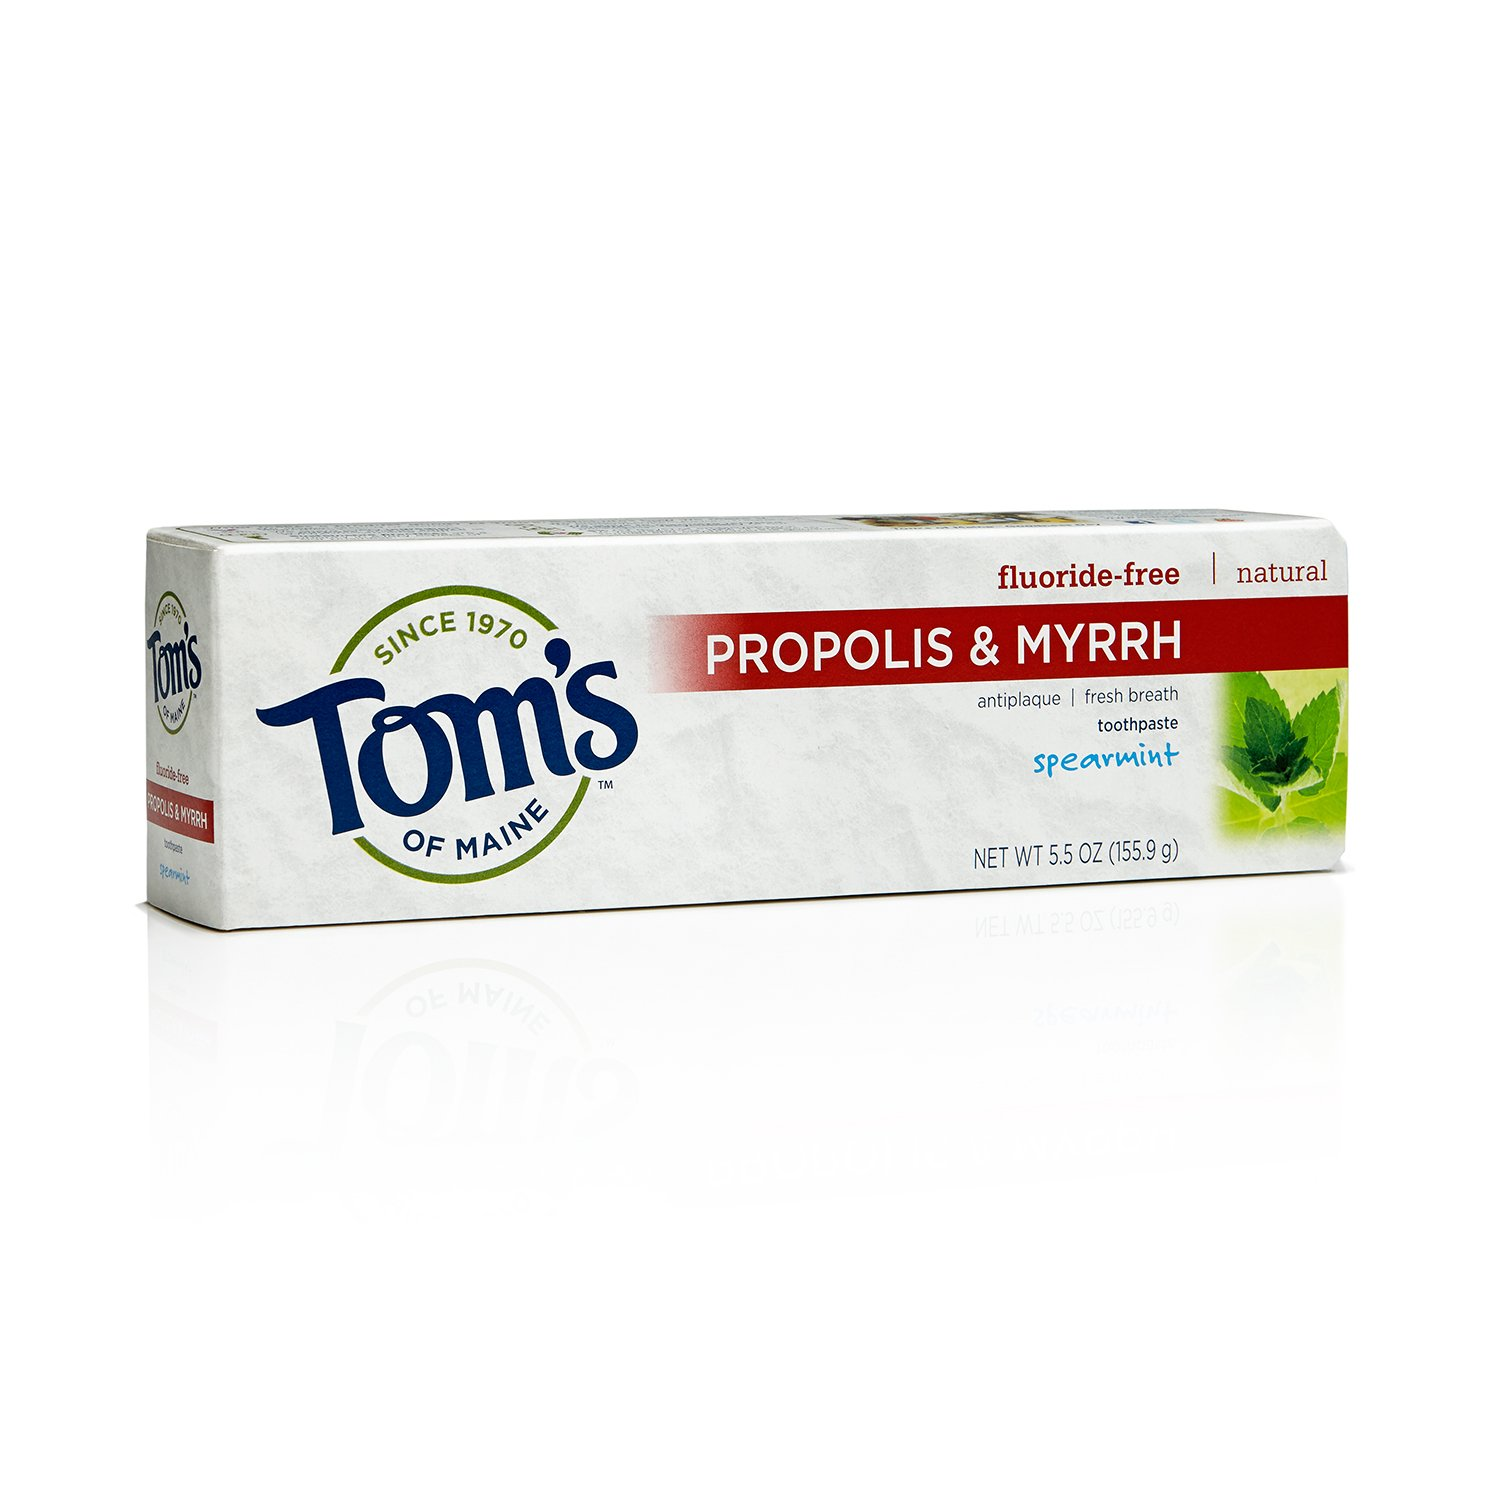 Tom's of Maine 683085 Fluoride-Free Natural Toothpaste with Propolis and Myrrh, Spearmint, 5.5 Ounce, 24 Count by Tom's of Maine (Image #1)